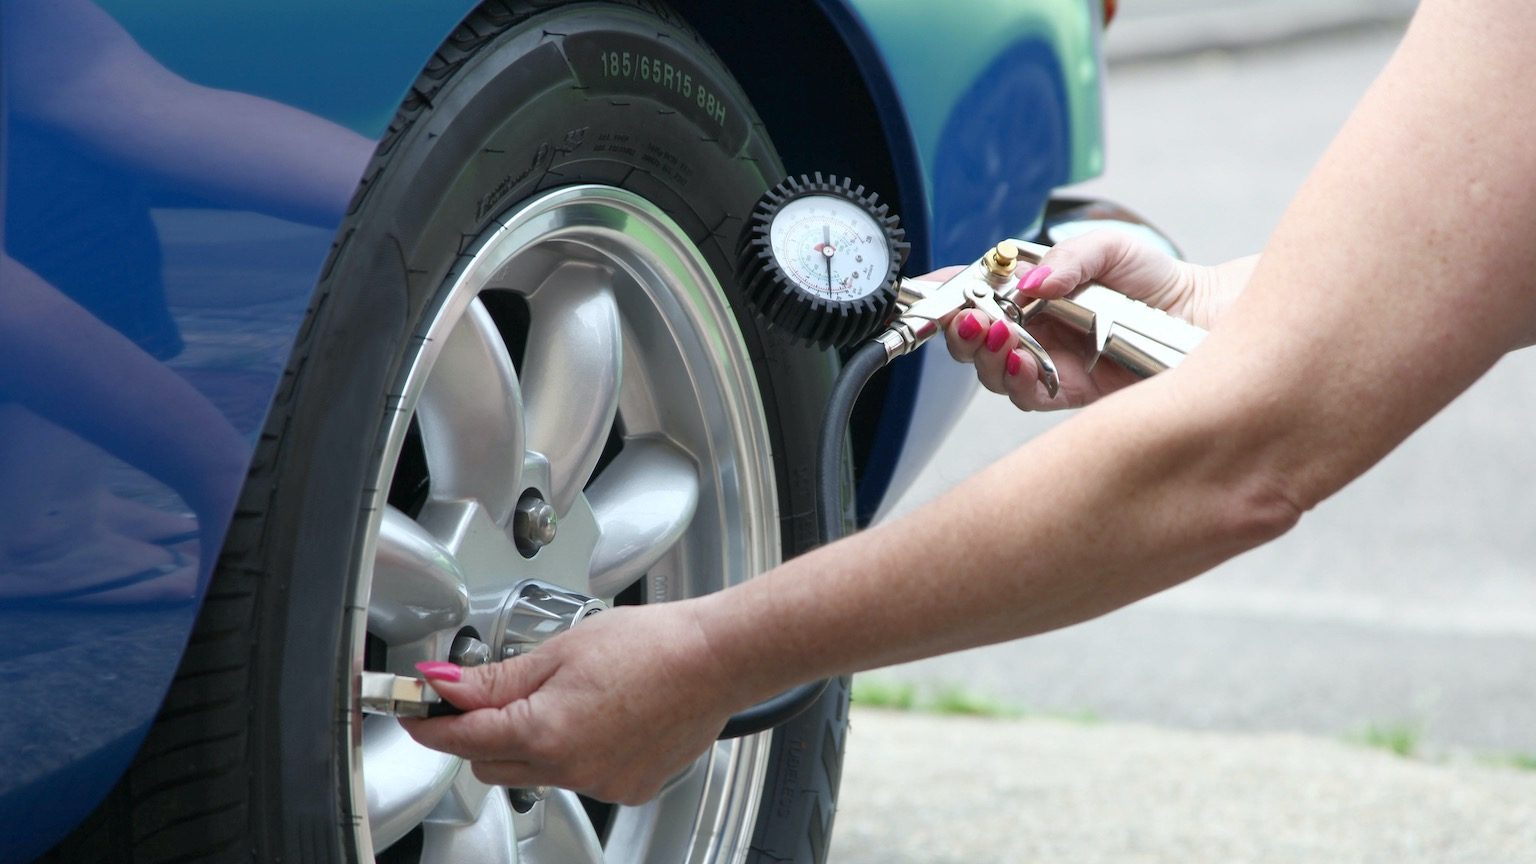 Female car maintenance using a  tyre pressure gauge to check the pressures on a classic  car tyre.